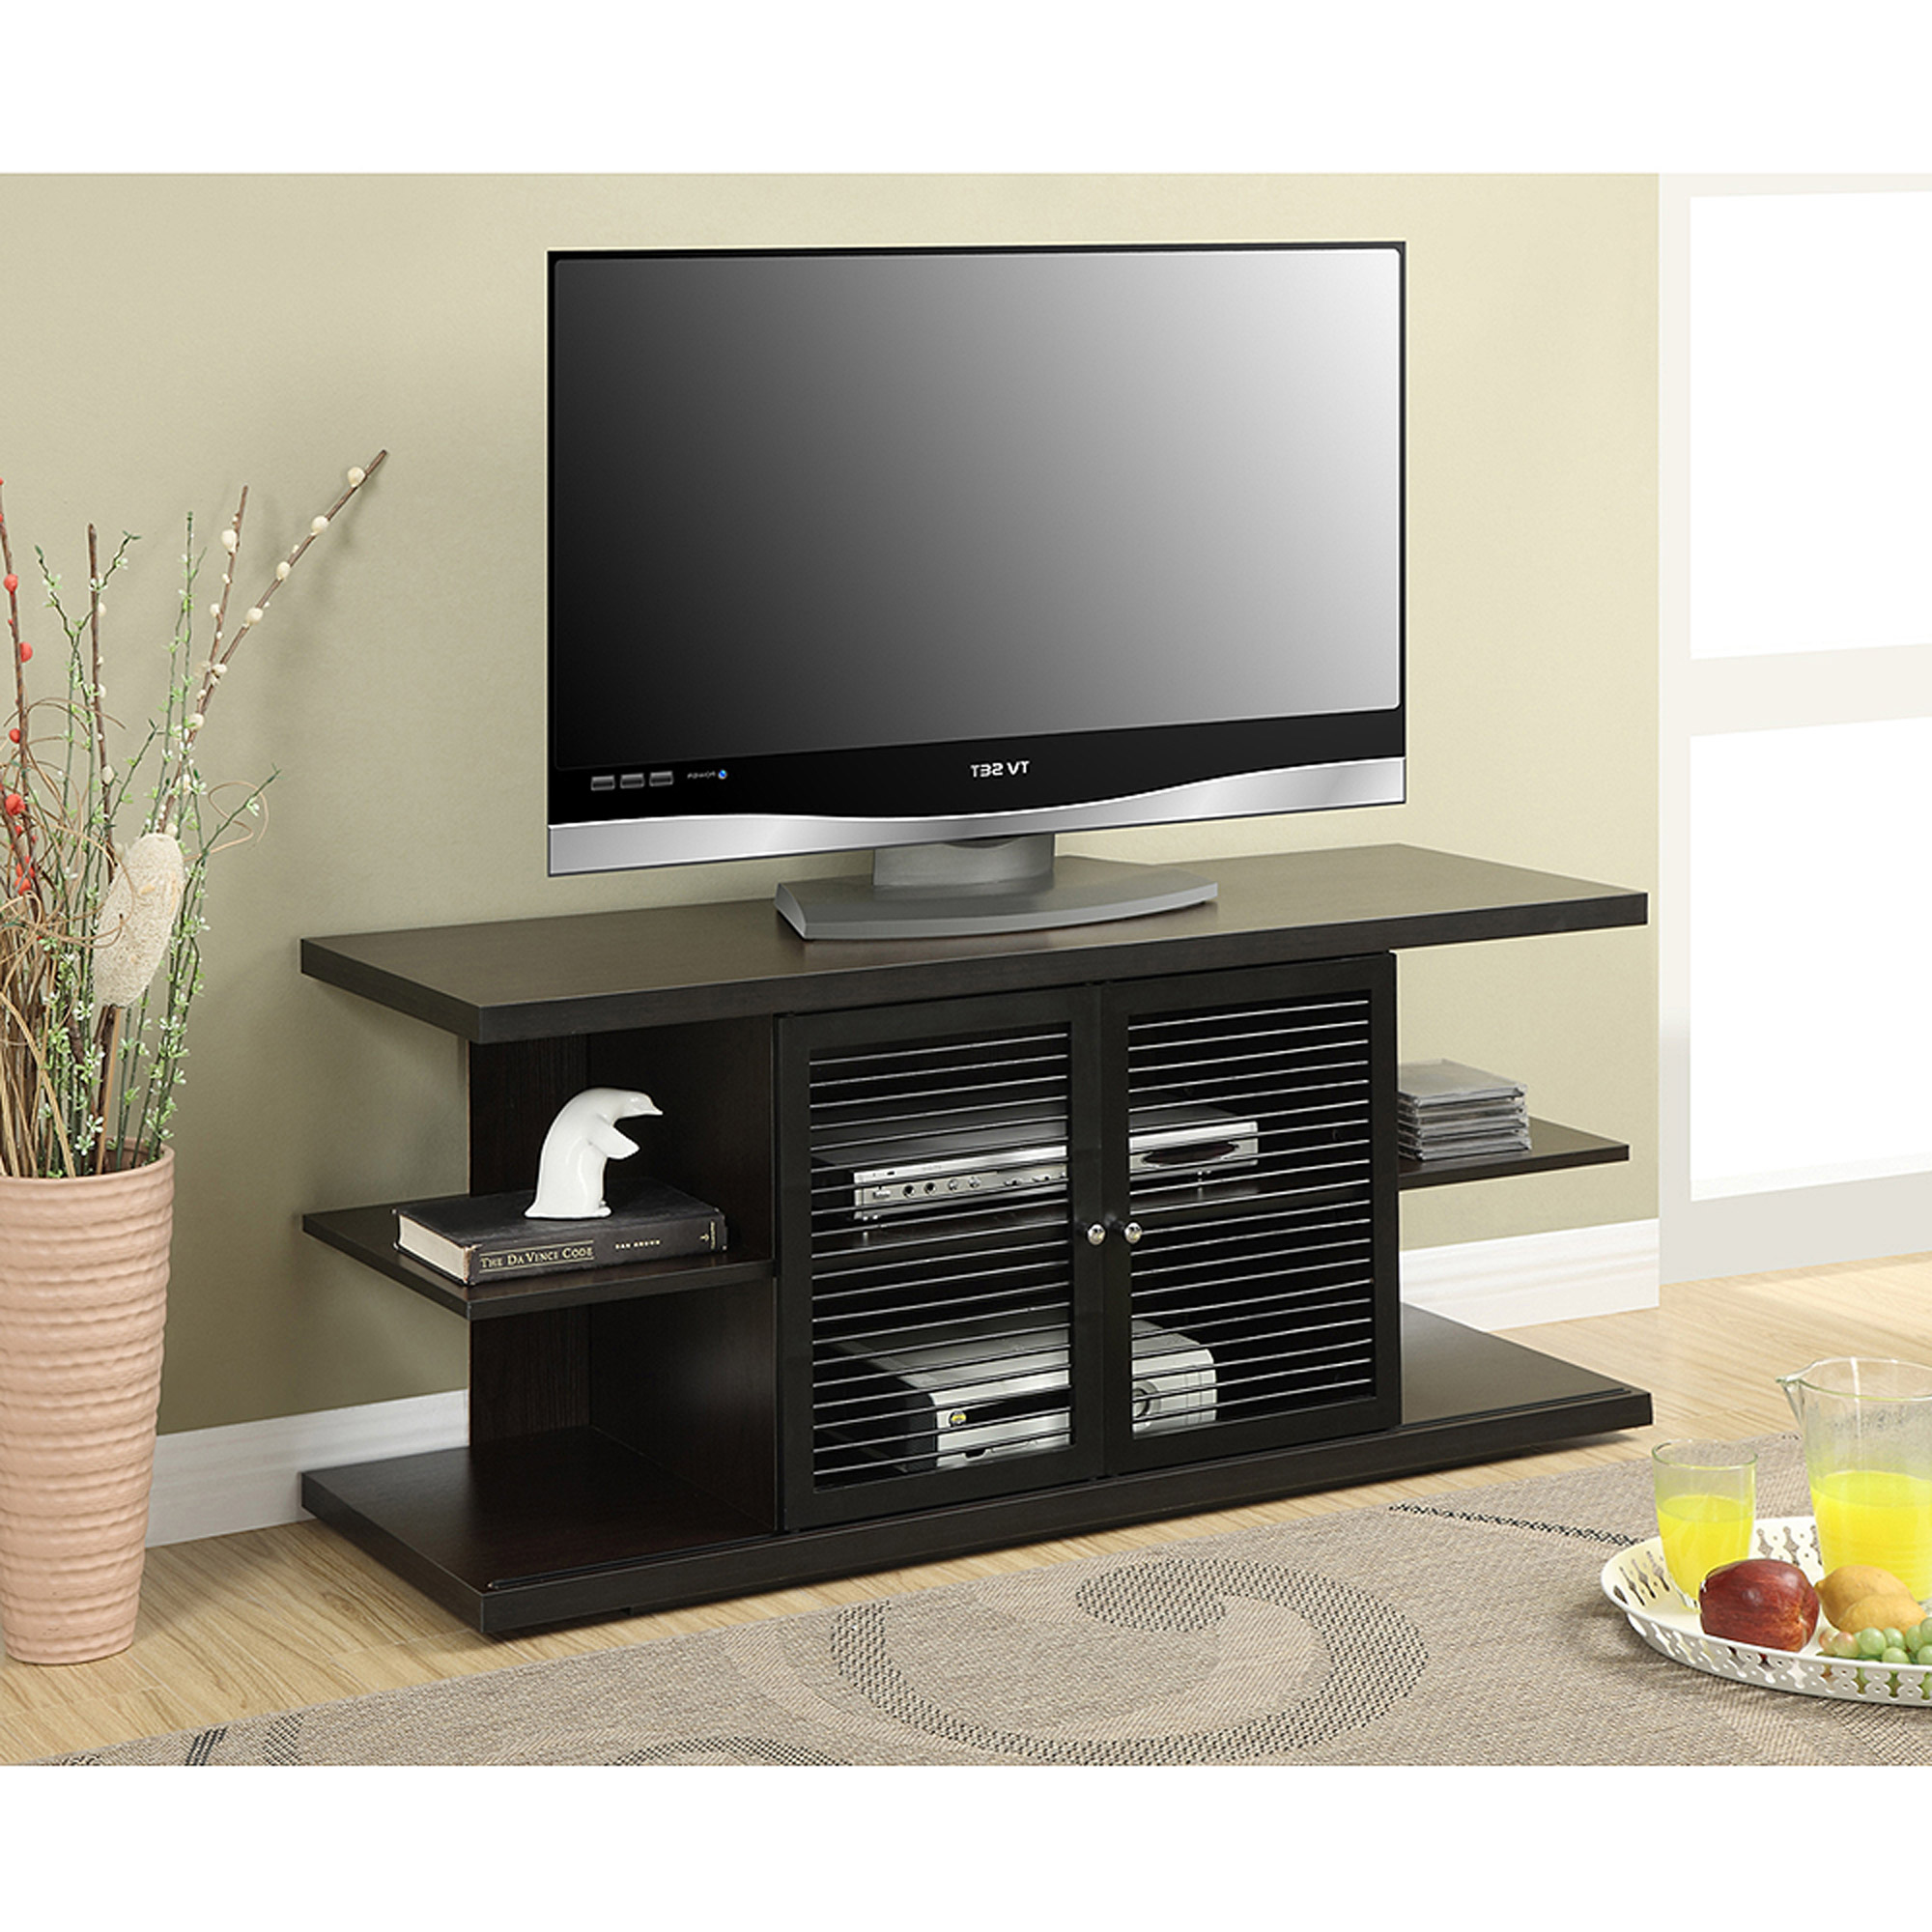 "Convenience Concepts Designs2Go East Hampton TV Stand for TVs up to 50"", Black/Espresso"